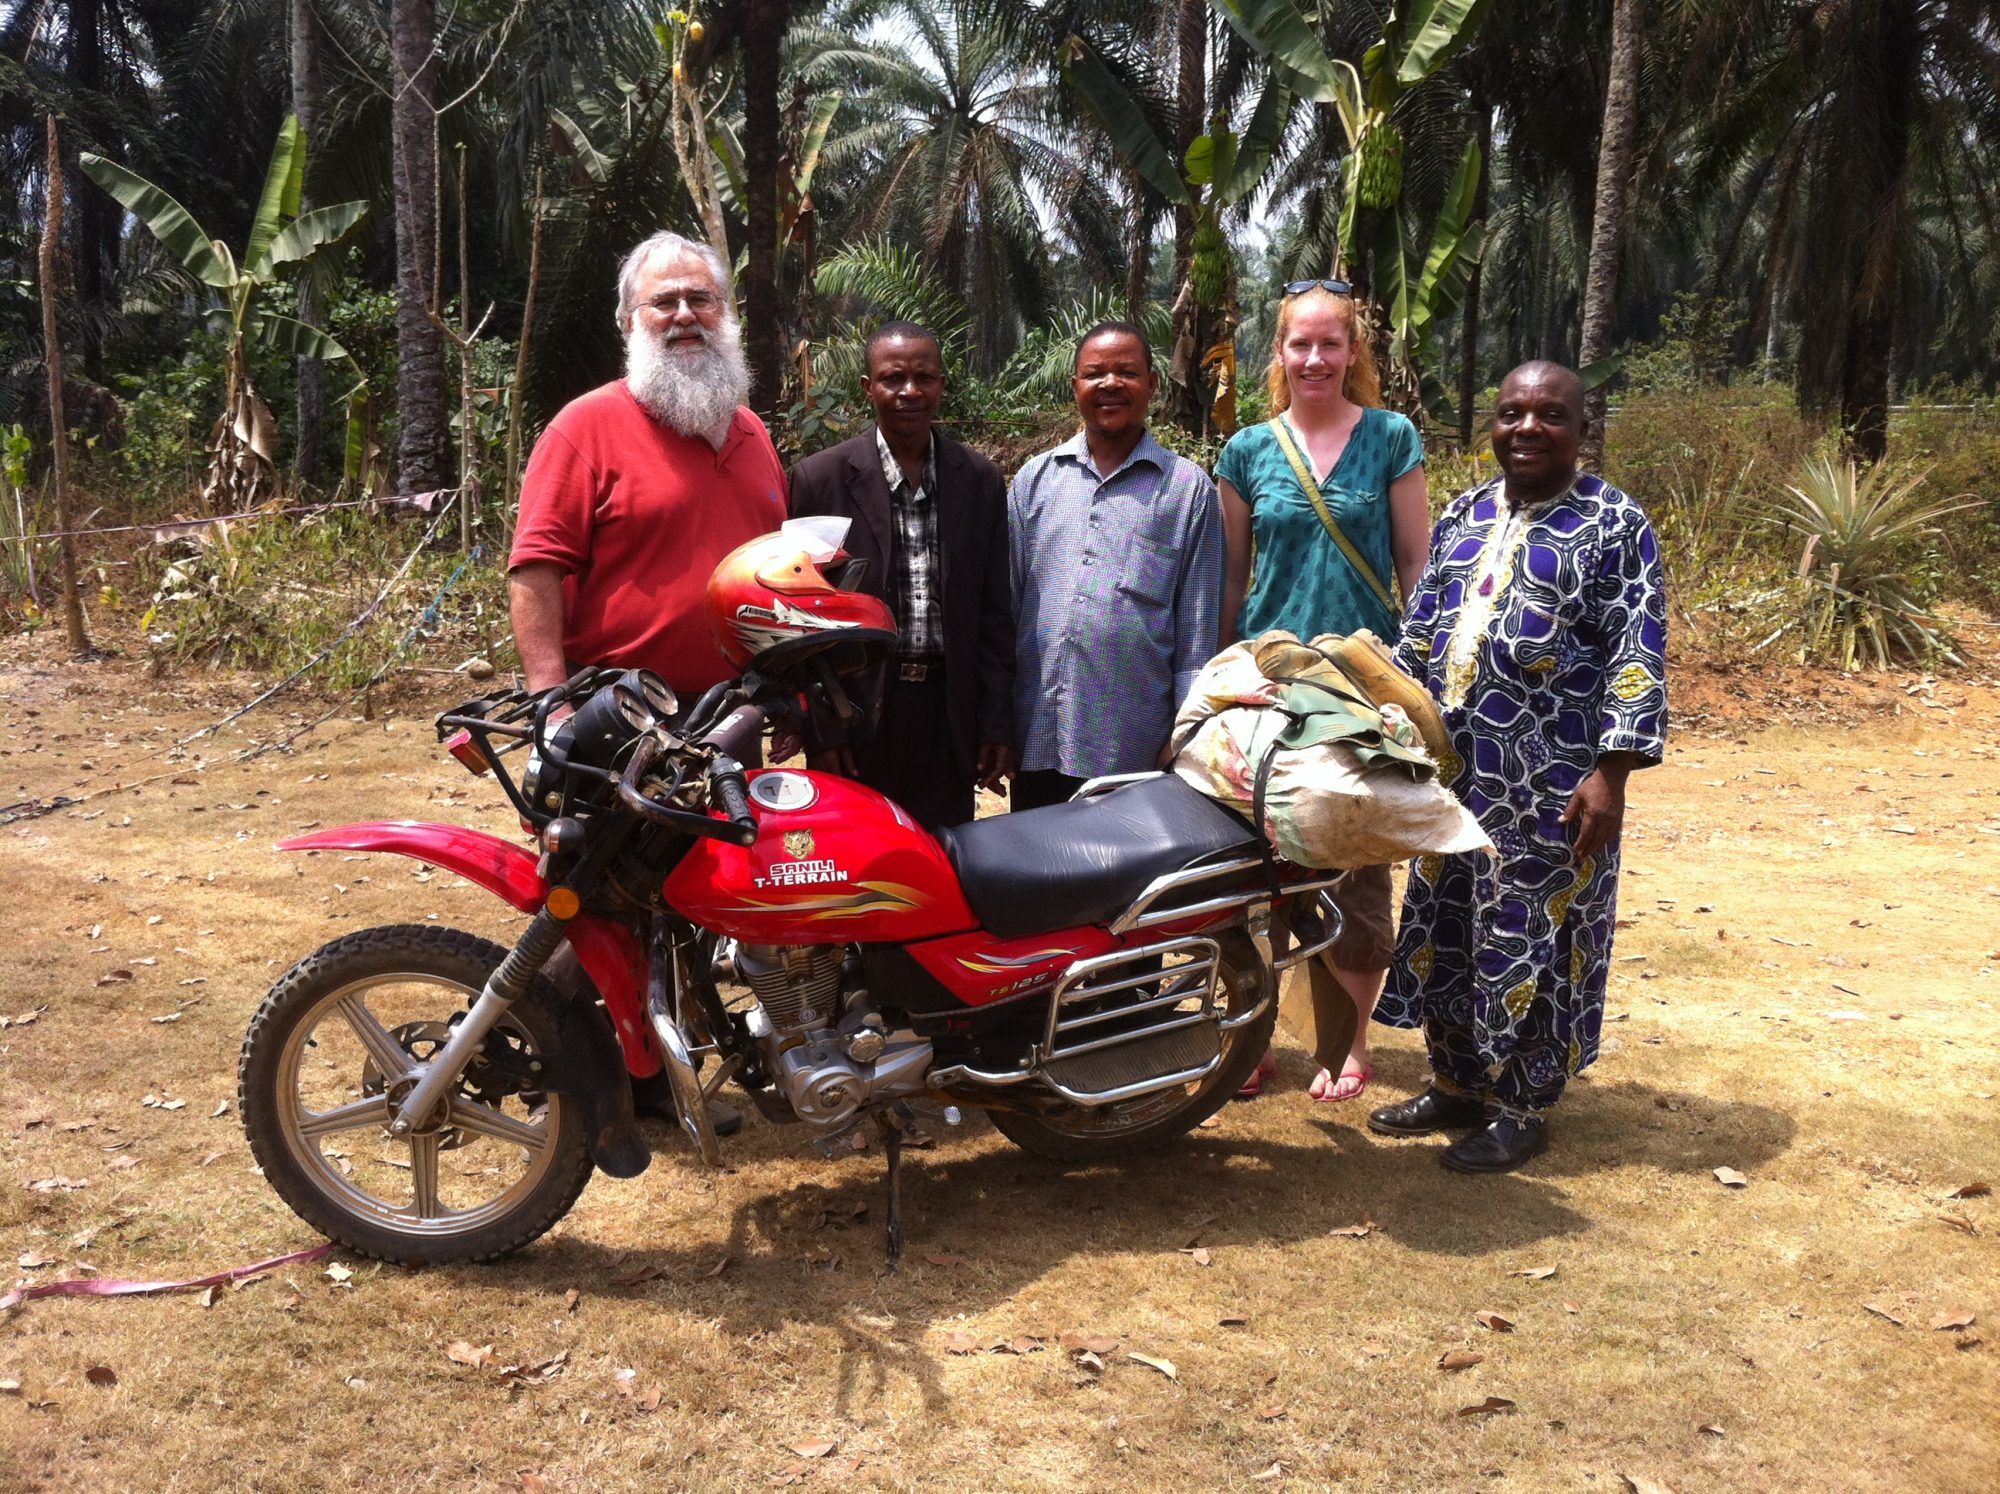 Professor Mike Brklacich beside a motorcycle in Cameroon, Lake Barombi.